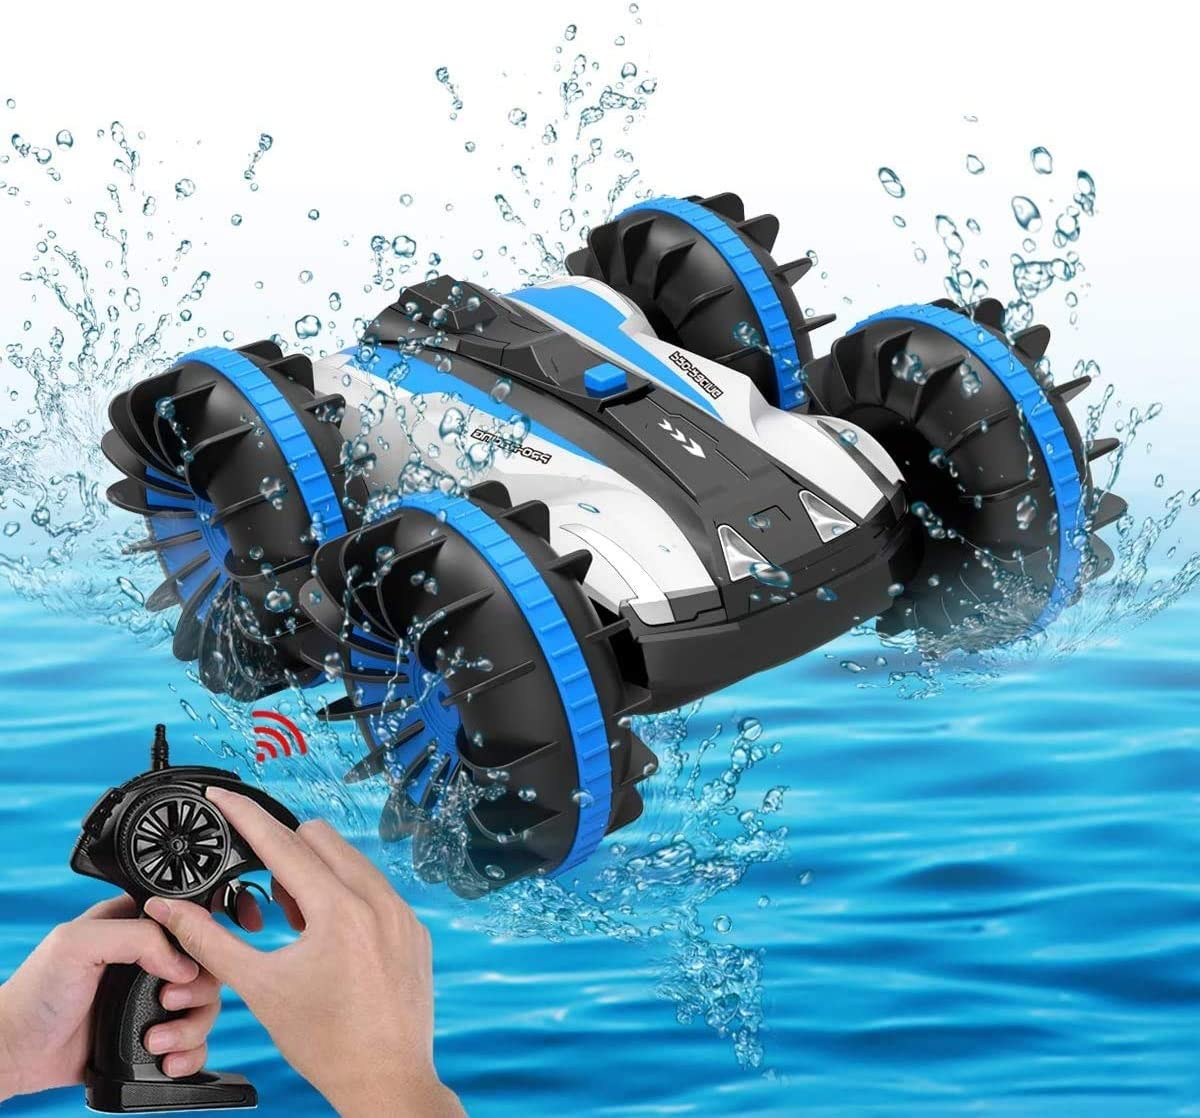 RC Car Boat Waterproof Remote Control 4WD 6CH 2.4G all Terrain RC Vehicle 1 16 Scale Double Sides Stunt Vehicle